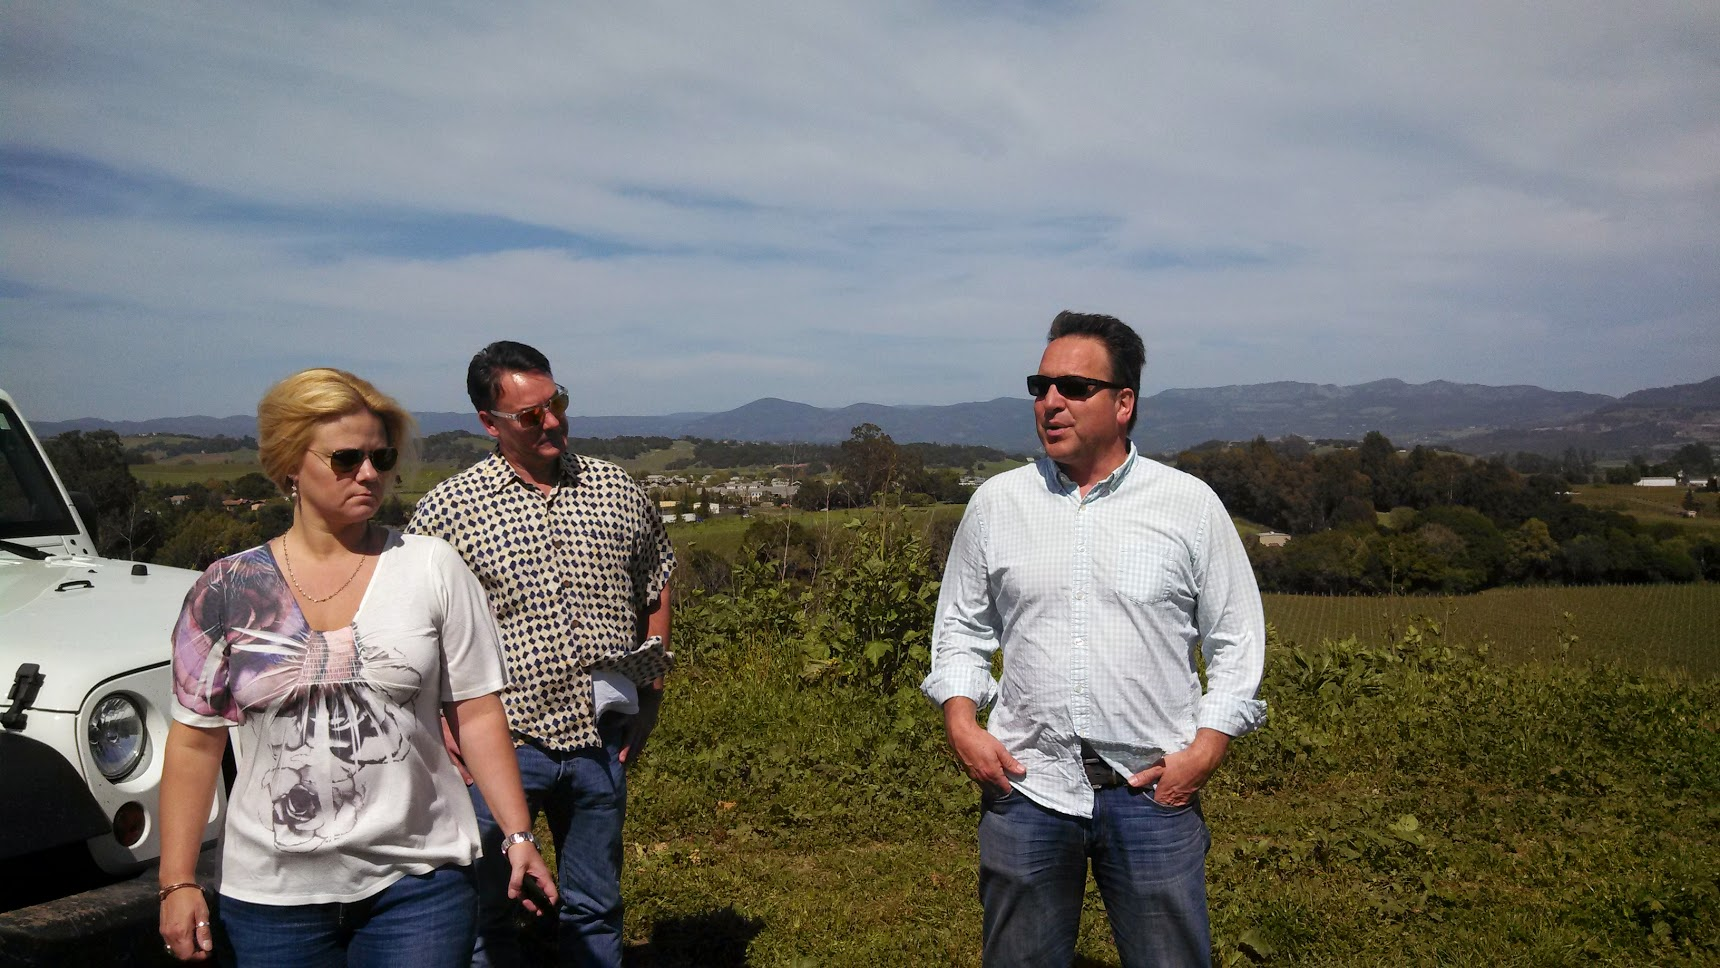 The vineyards at Cuvaison. From L-R: Jennifer Fernandez, Central U.S. Regional Manager; Steve Richards, National Sales Manager, Steven Rogstad, Winemaker